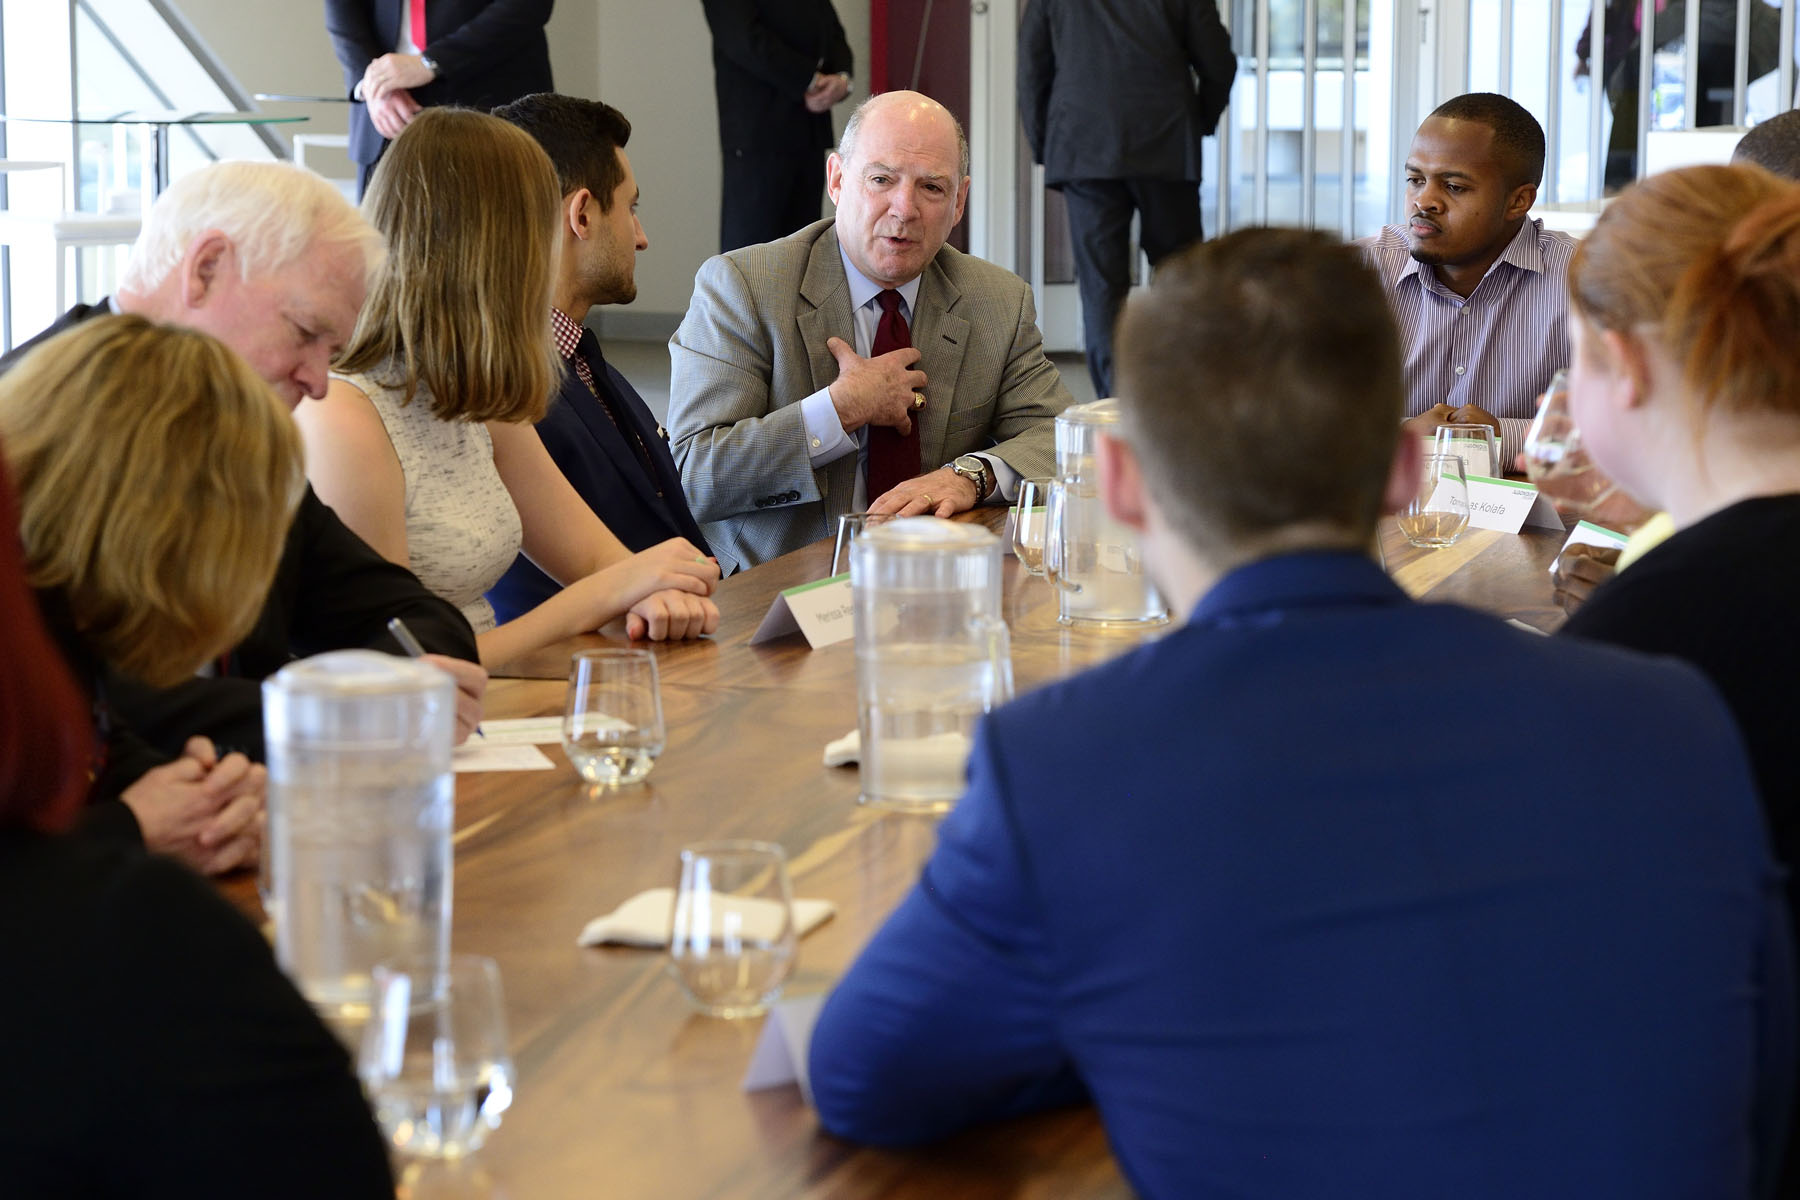 Scott Haldane, President and CEO of the Rideau Hall Foundation, participated in the round-table discussion and told students he was encouraged by their many initiatives.